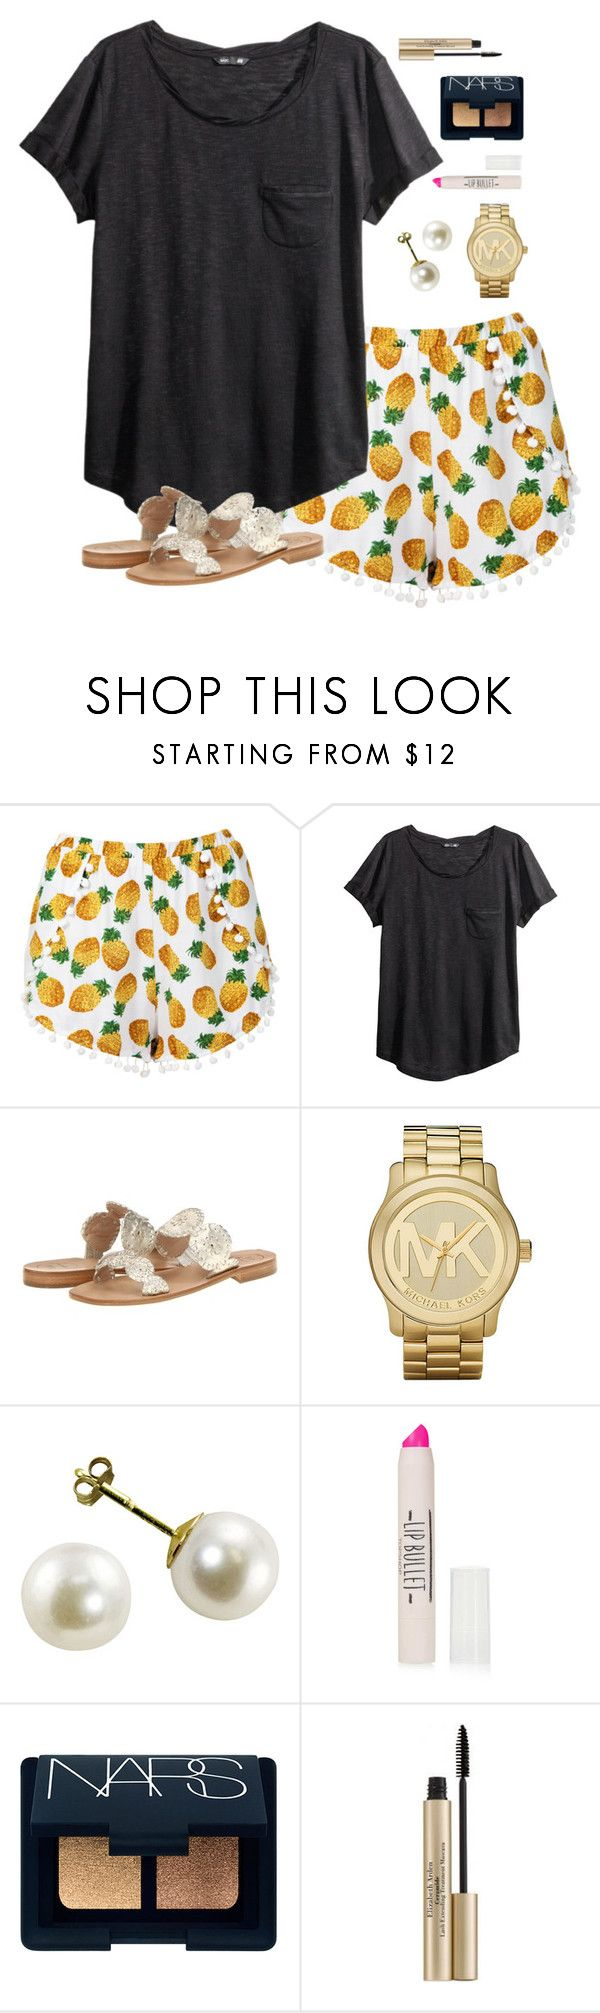 """""""pineapples"""" by classically-preppy ❤ liked on Polyvore featuring H&M, Jack Rogers, Michael Kors, Topshop, NARS Cosmetics and Elizabeth Arden"""